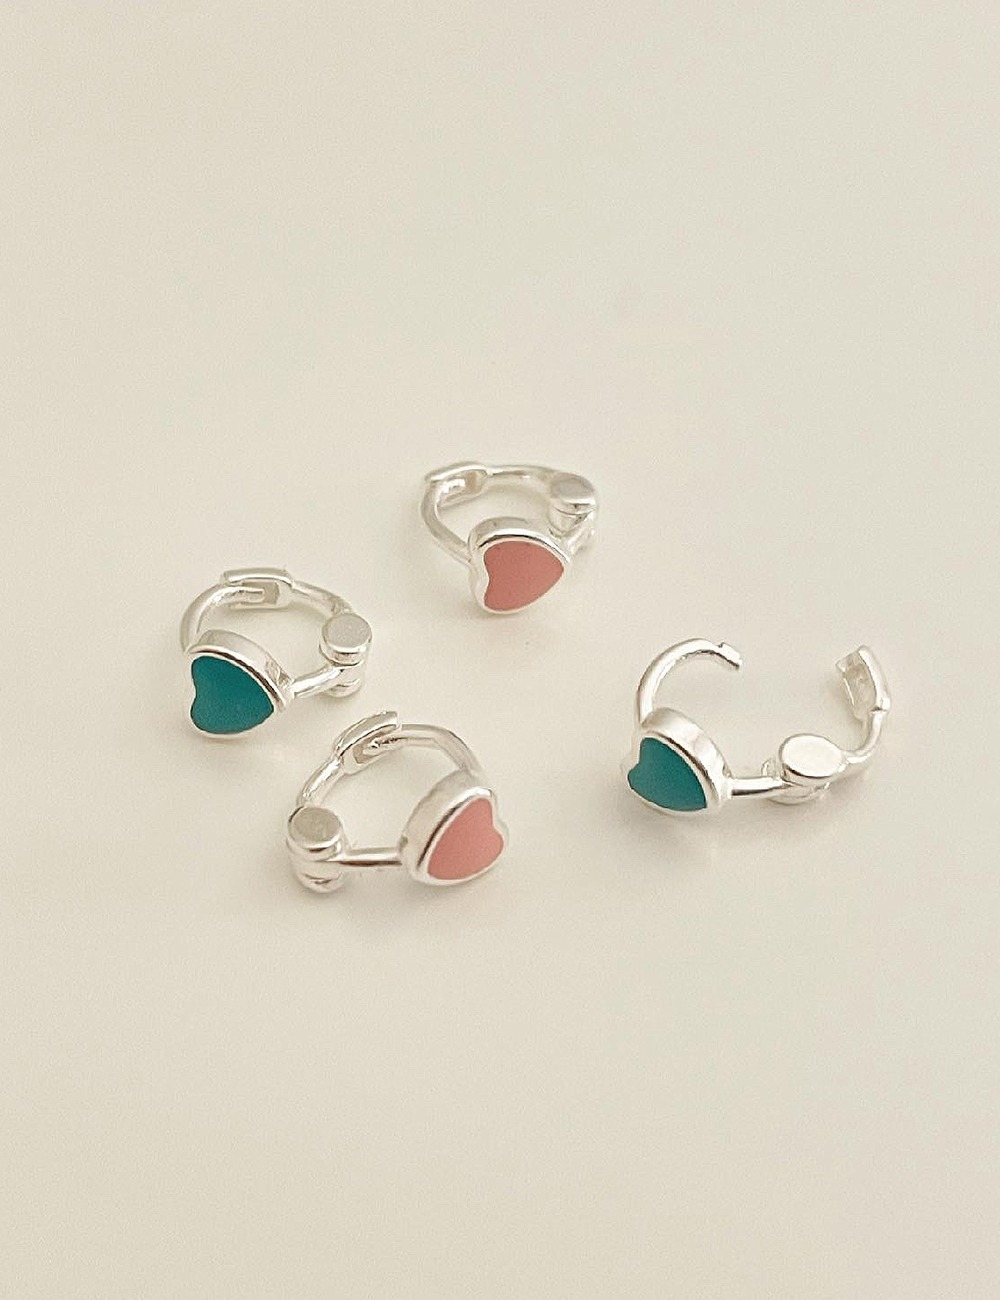 (silver925) Lovely heart earring *1개 제품